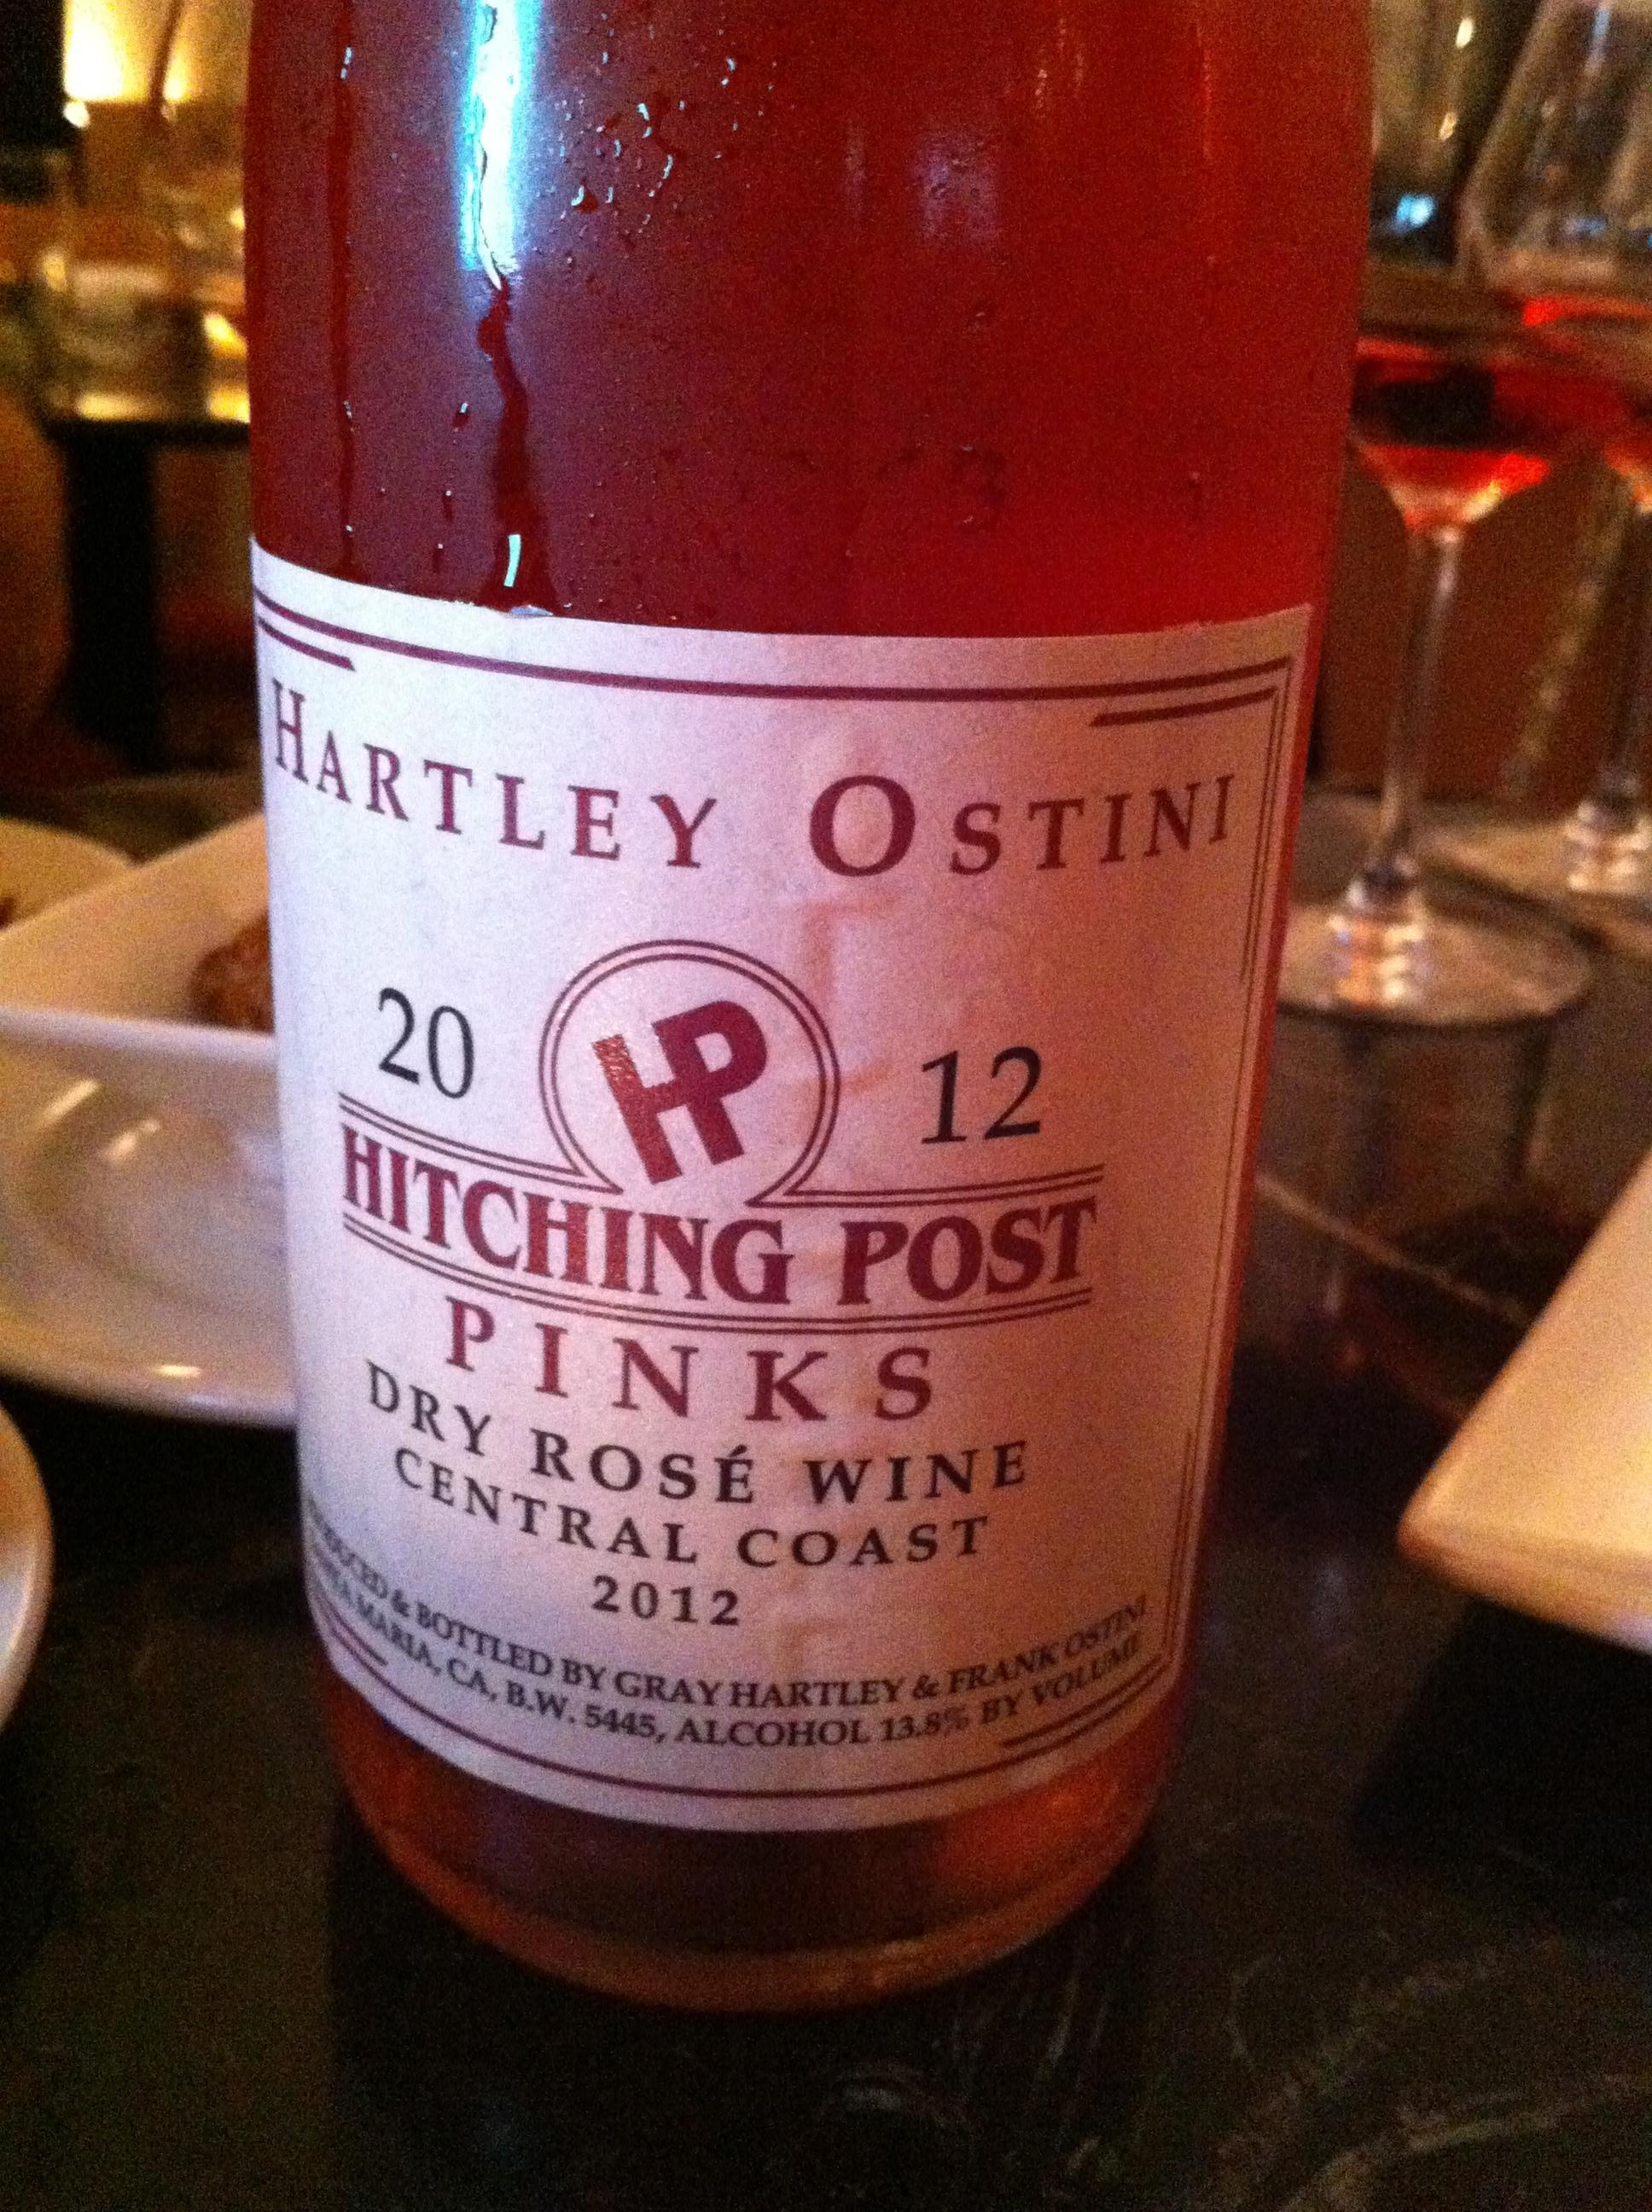 Hitching Post Pinks